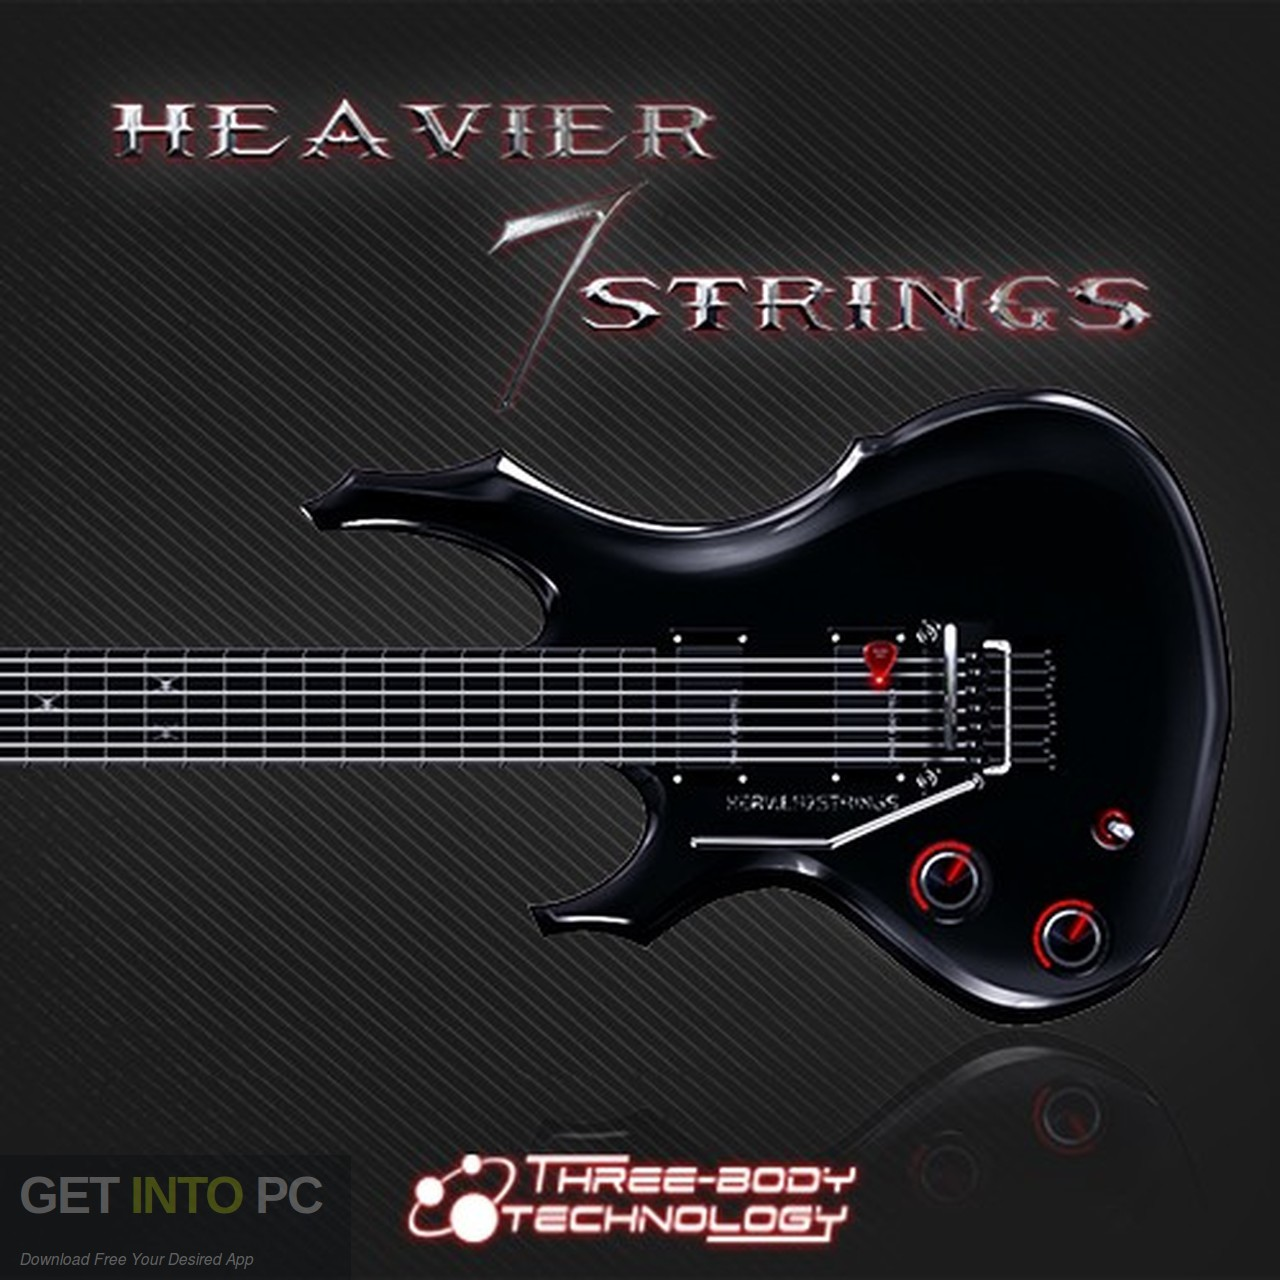 Body-Tech Three - Heavier7Strings VST Download for free-GetintoPC.com